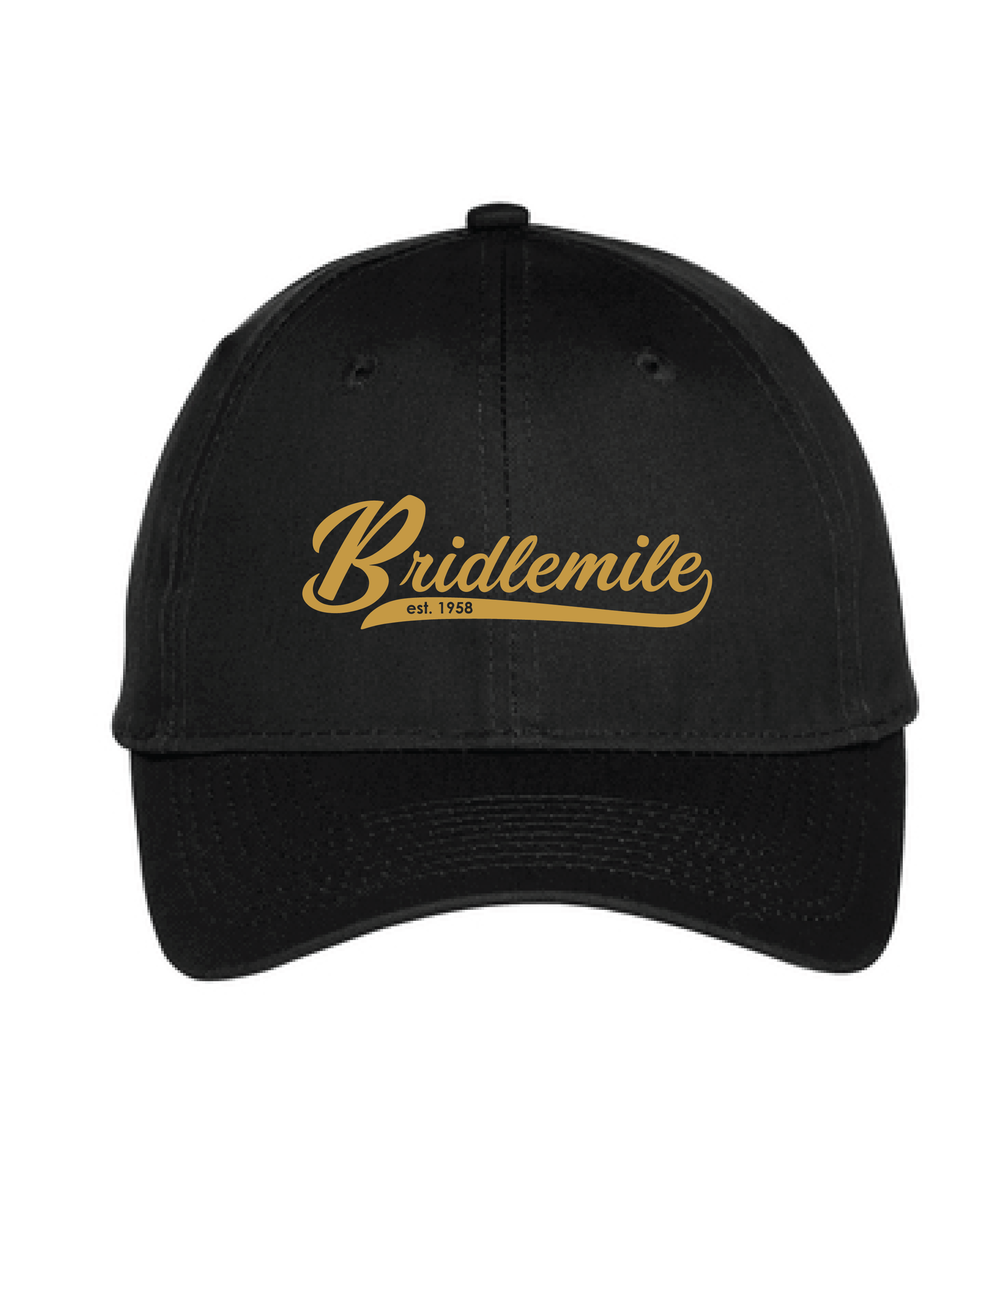 Bridlemile 60th Anniversary Designs_60th embroidered cap.png